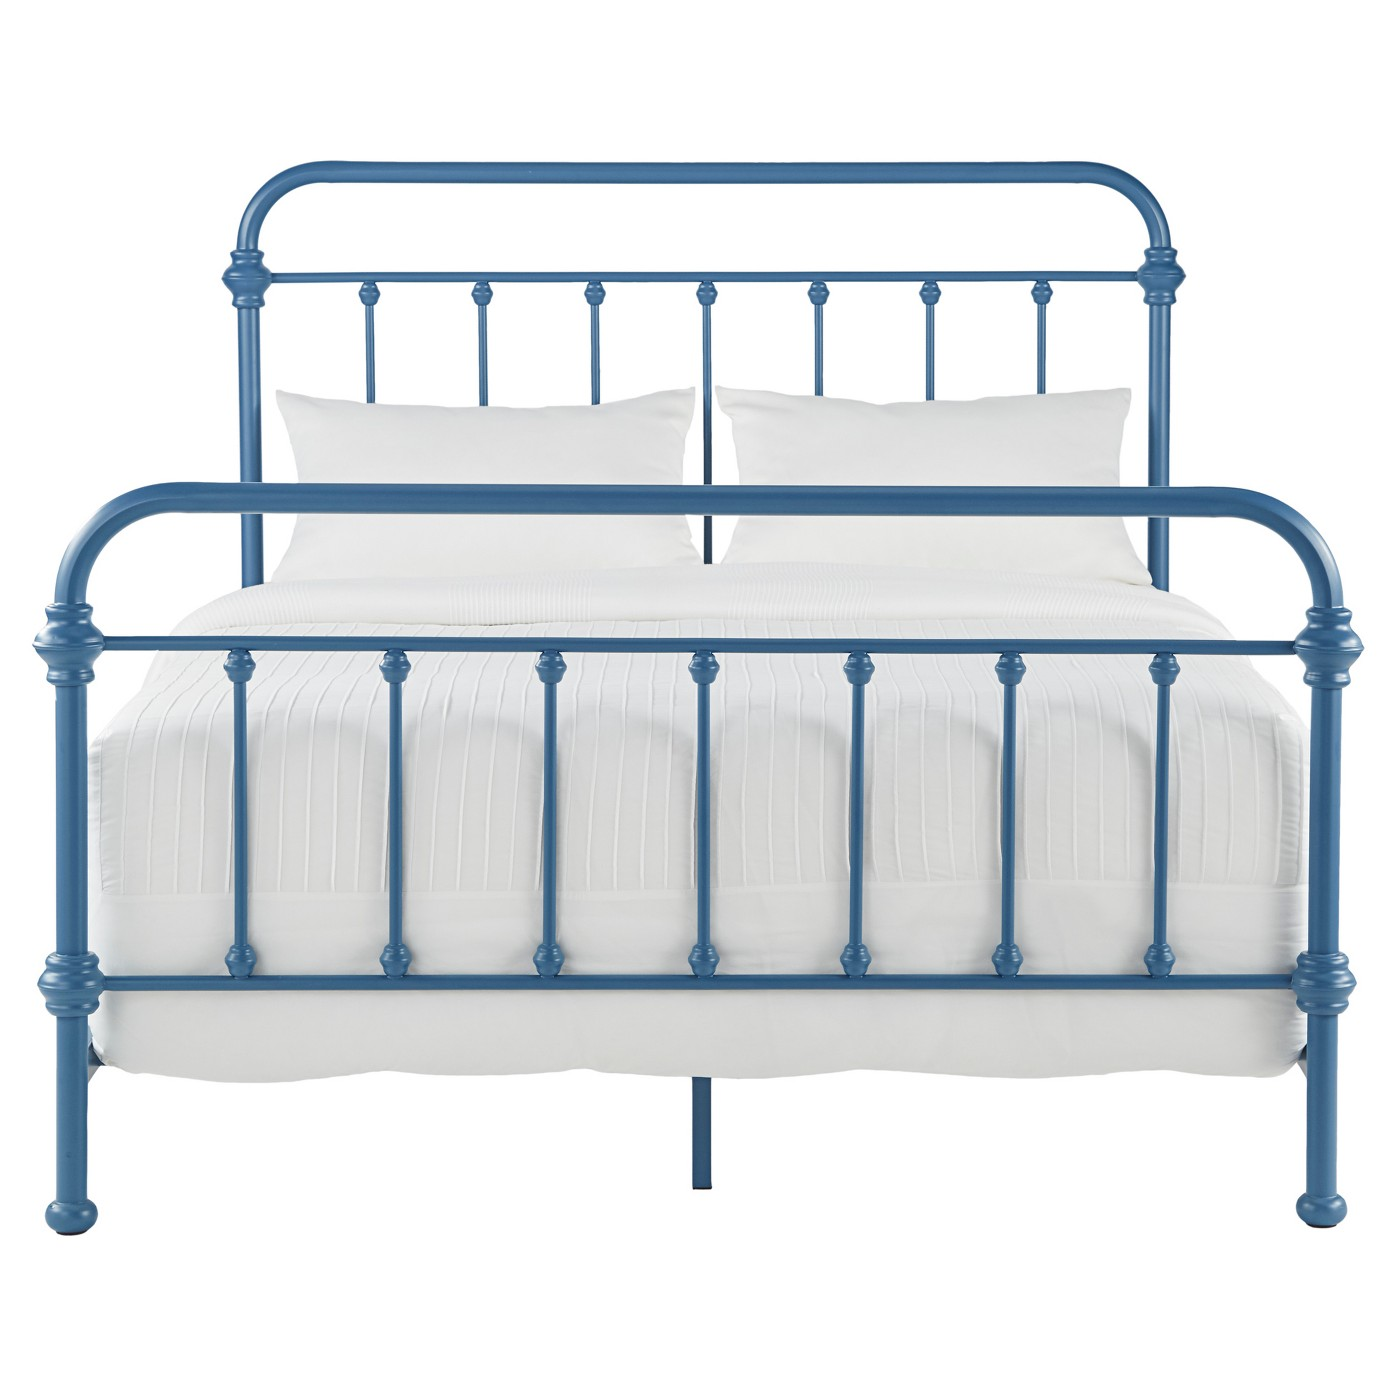 METAL BED IN ASSORTED COLORS